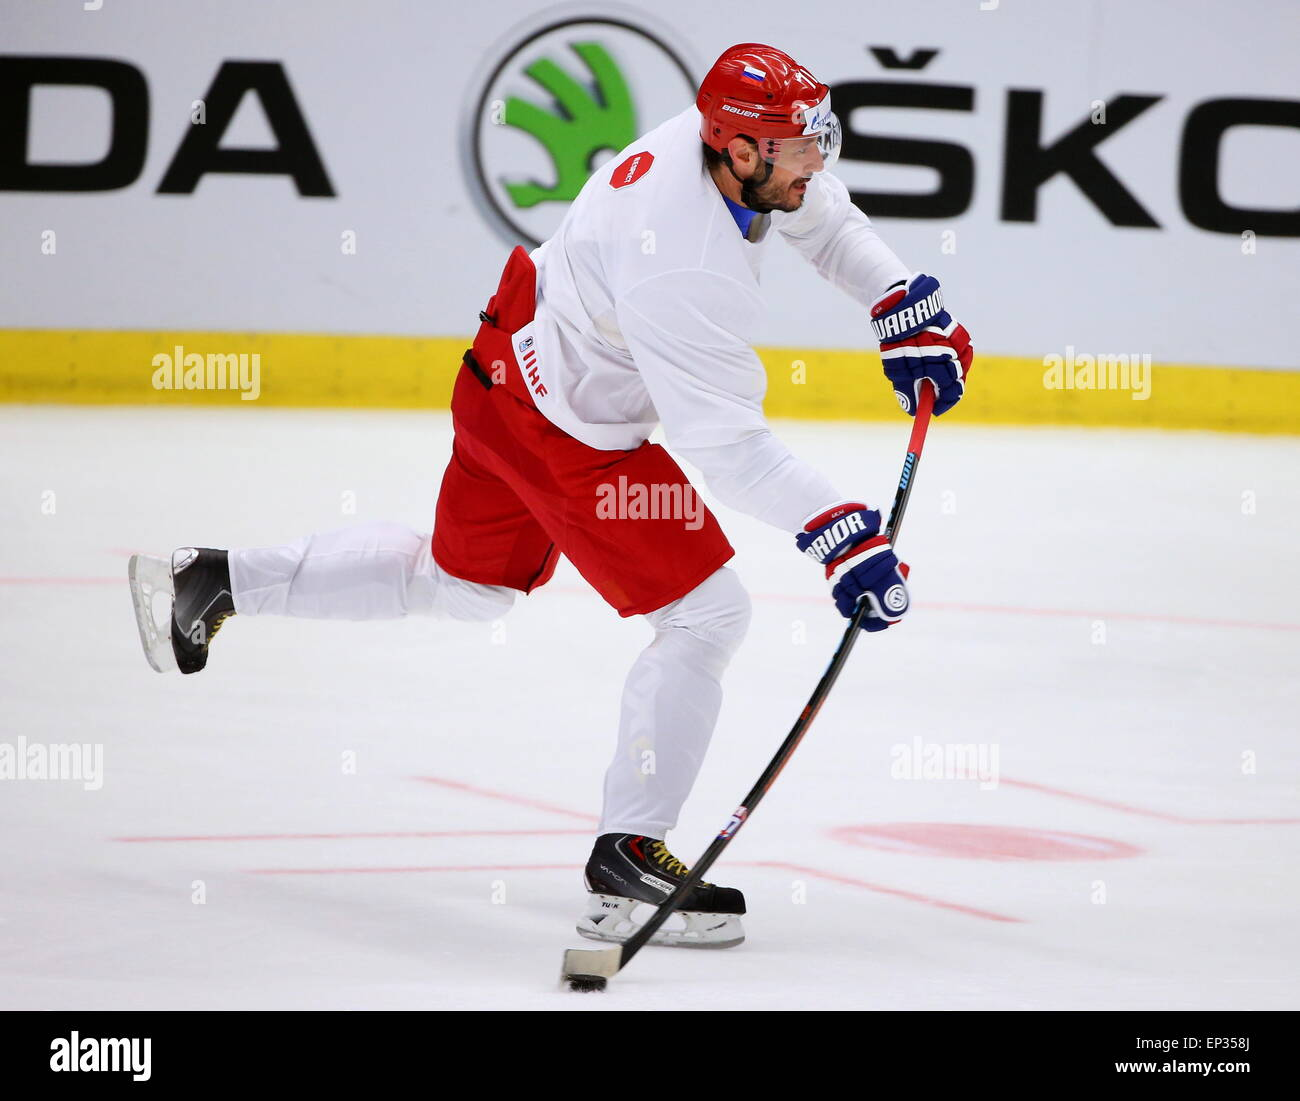 Ostrava, Czech Republic. 13th May, 2015. Ilya Kovalchuk, forward of the Russian men's national ice hockey team, - Stock Image